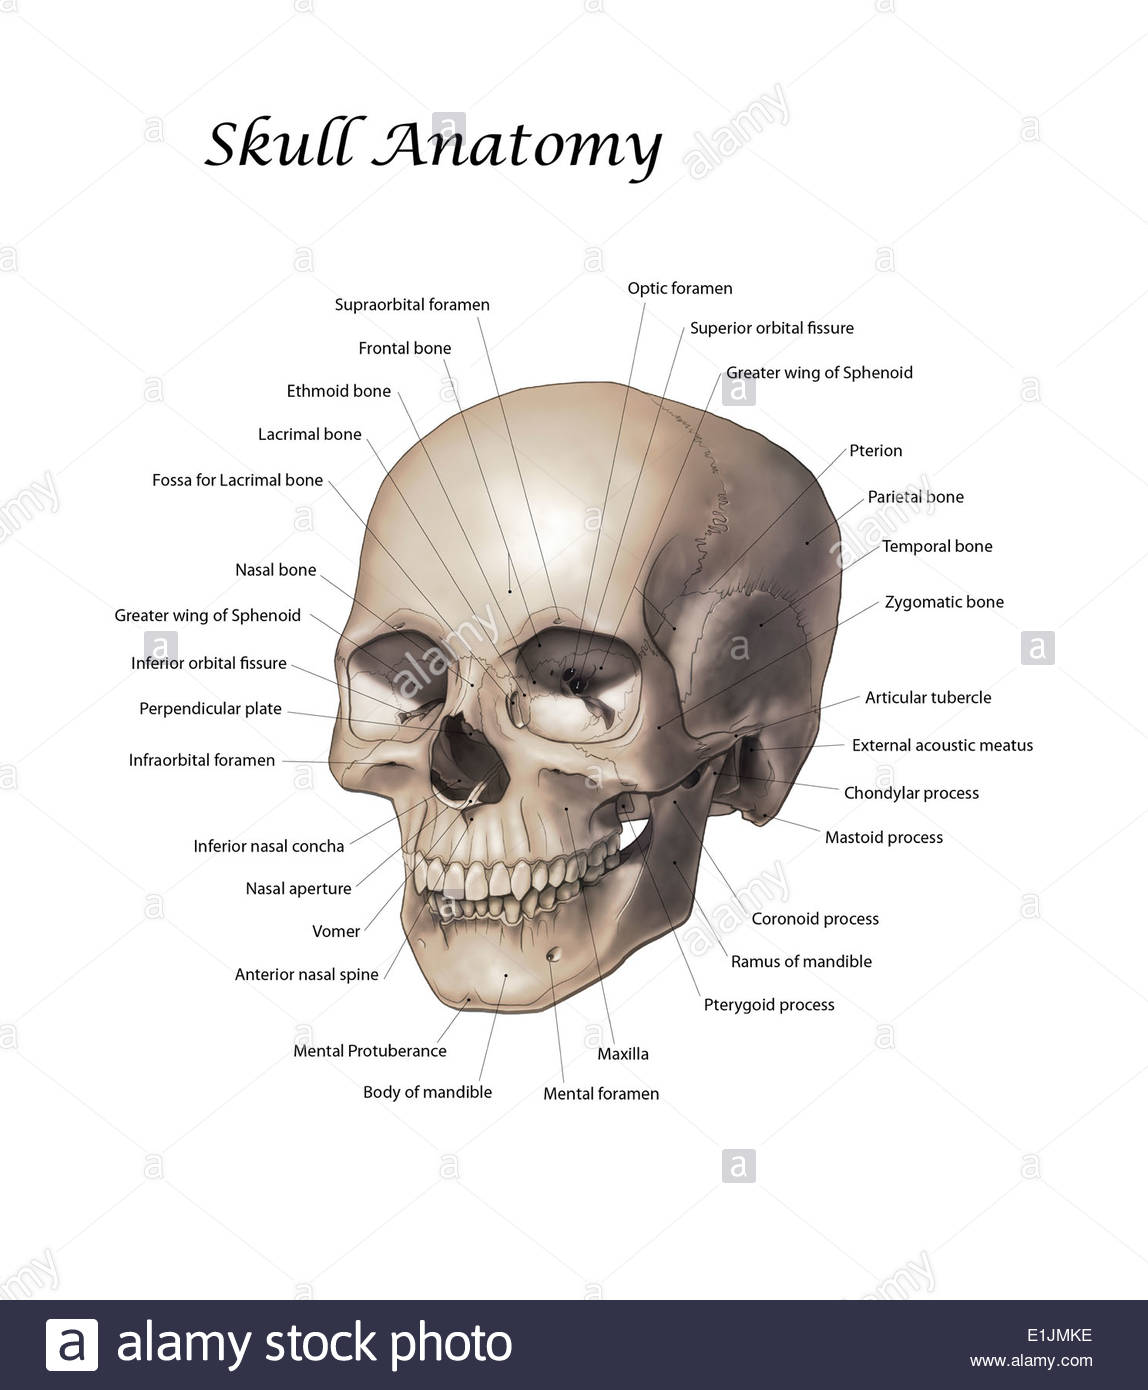 Color illustration of a human skull with labels. - Stock Image